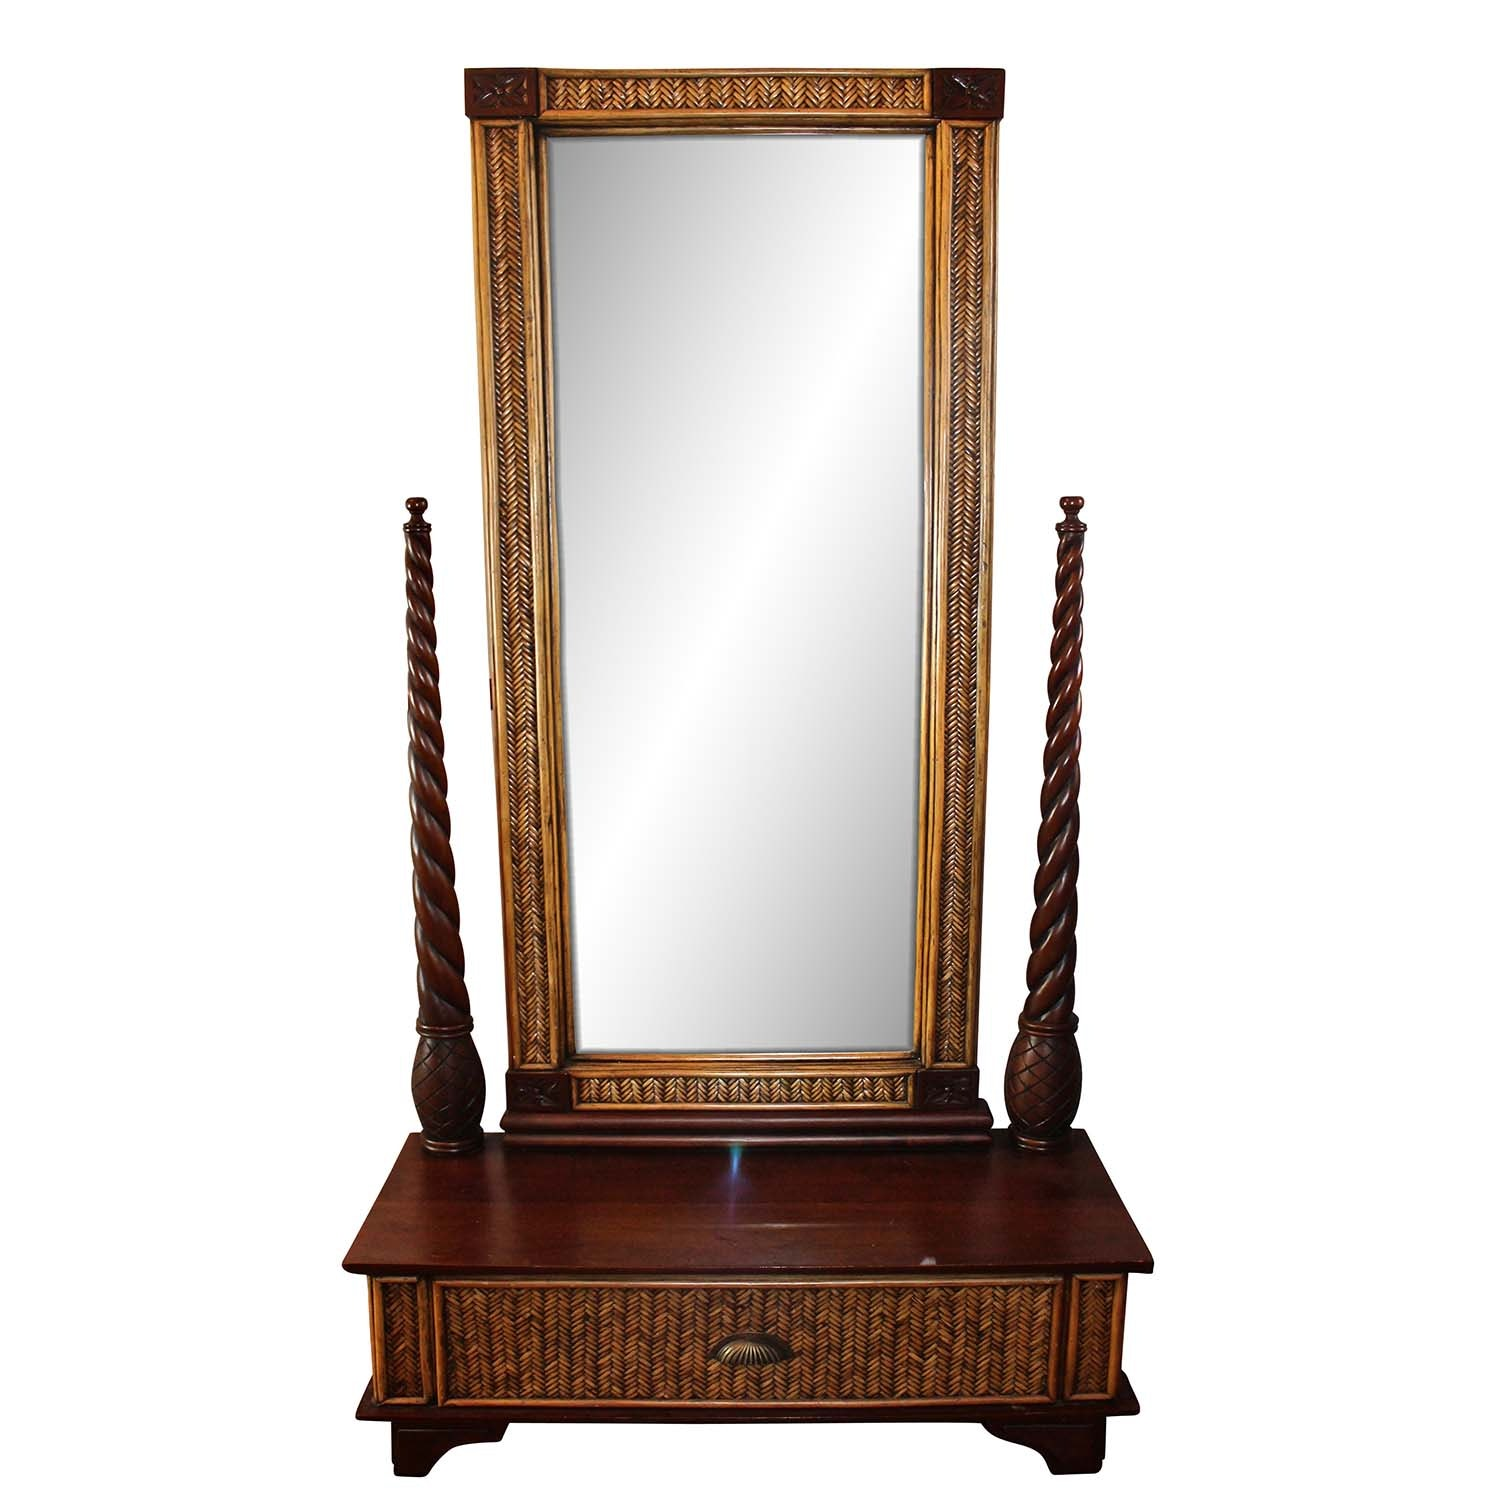 British Colonial Style Wood and Rattan Hall Mirror